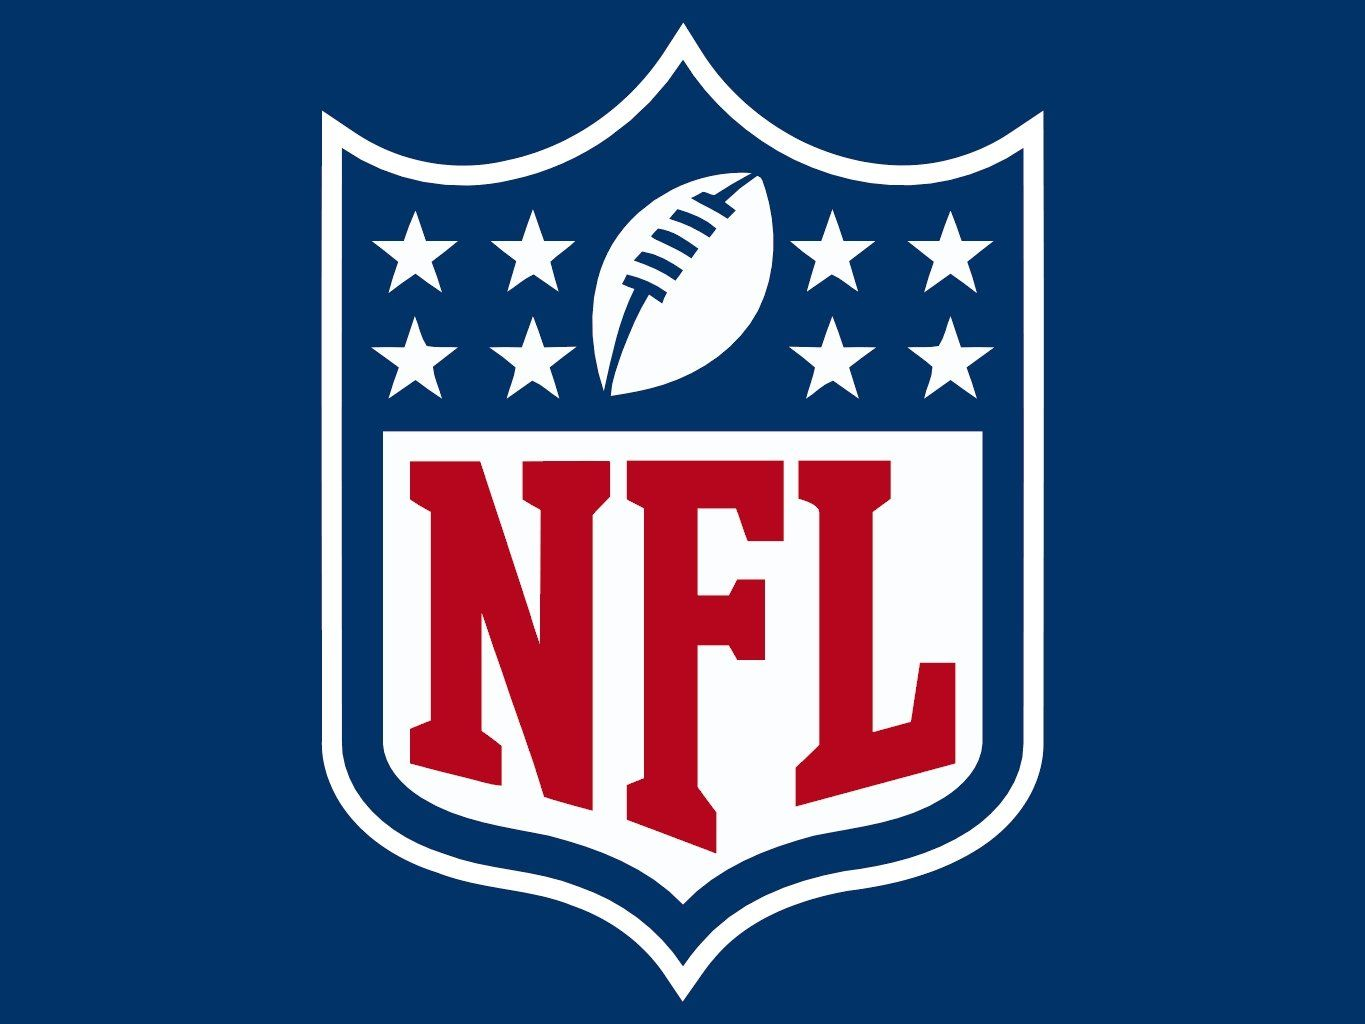 NFL Logo - NFL Logo Wallpaper | NFL Logo Wallpaper | NFL, Football, Nfl logo